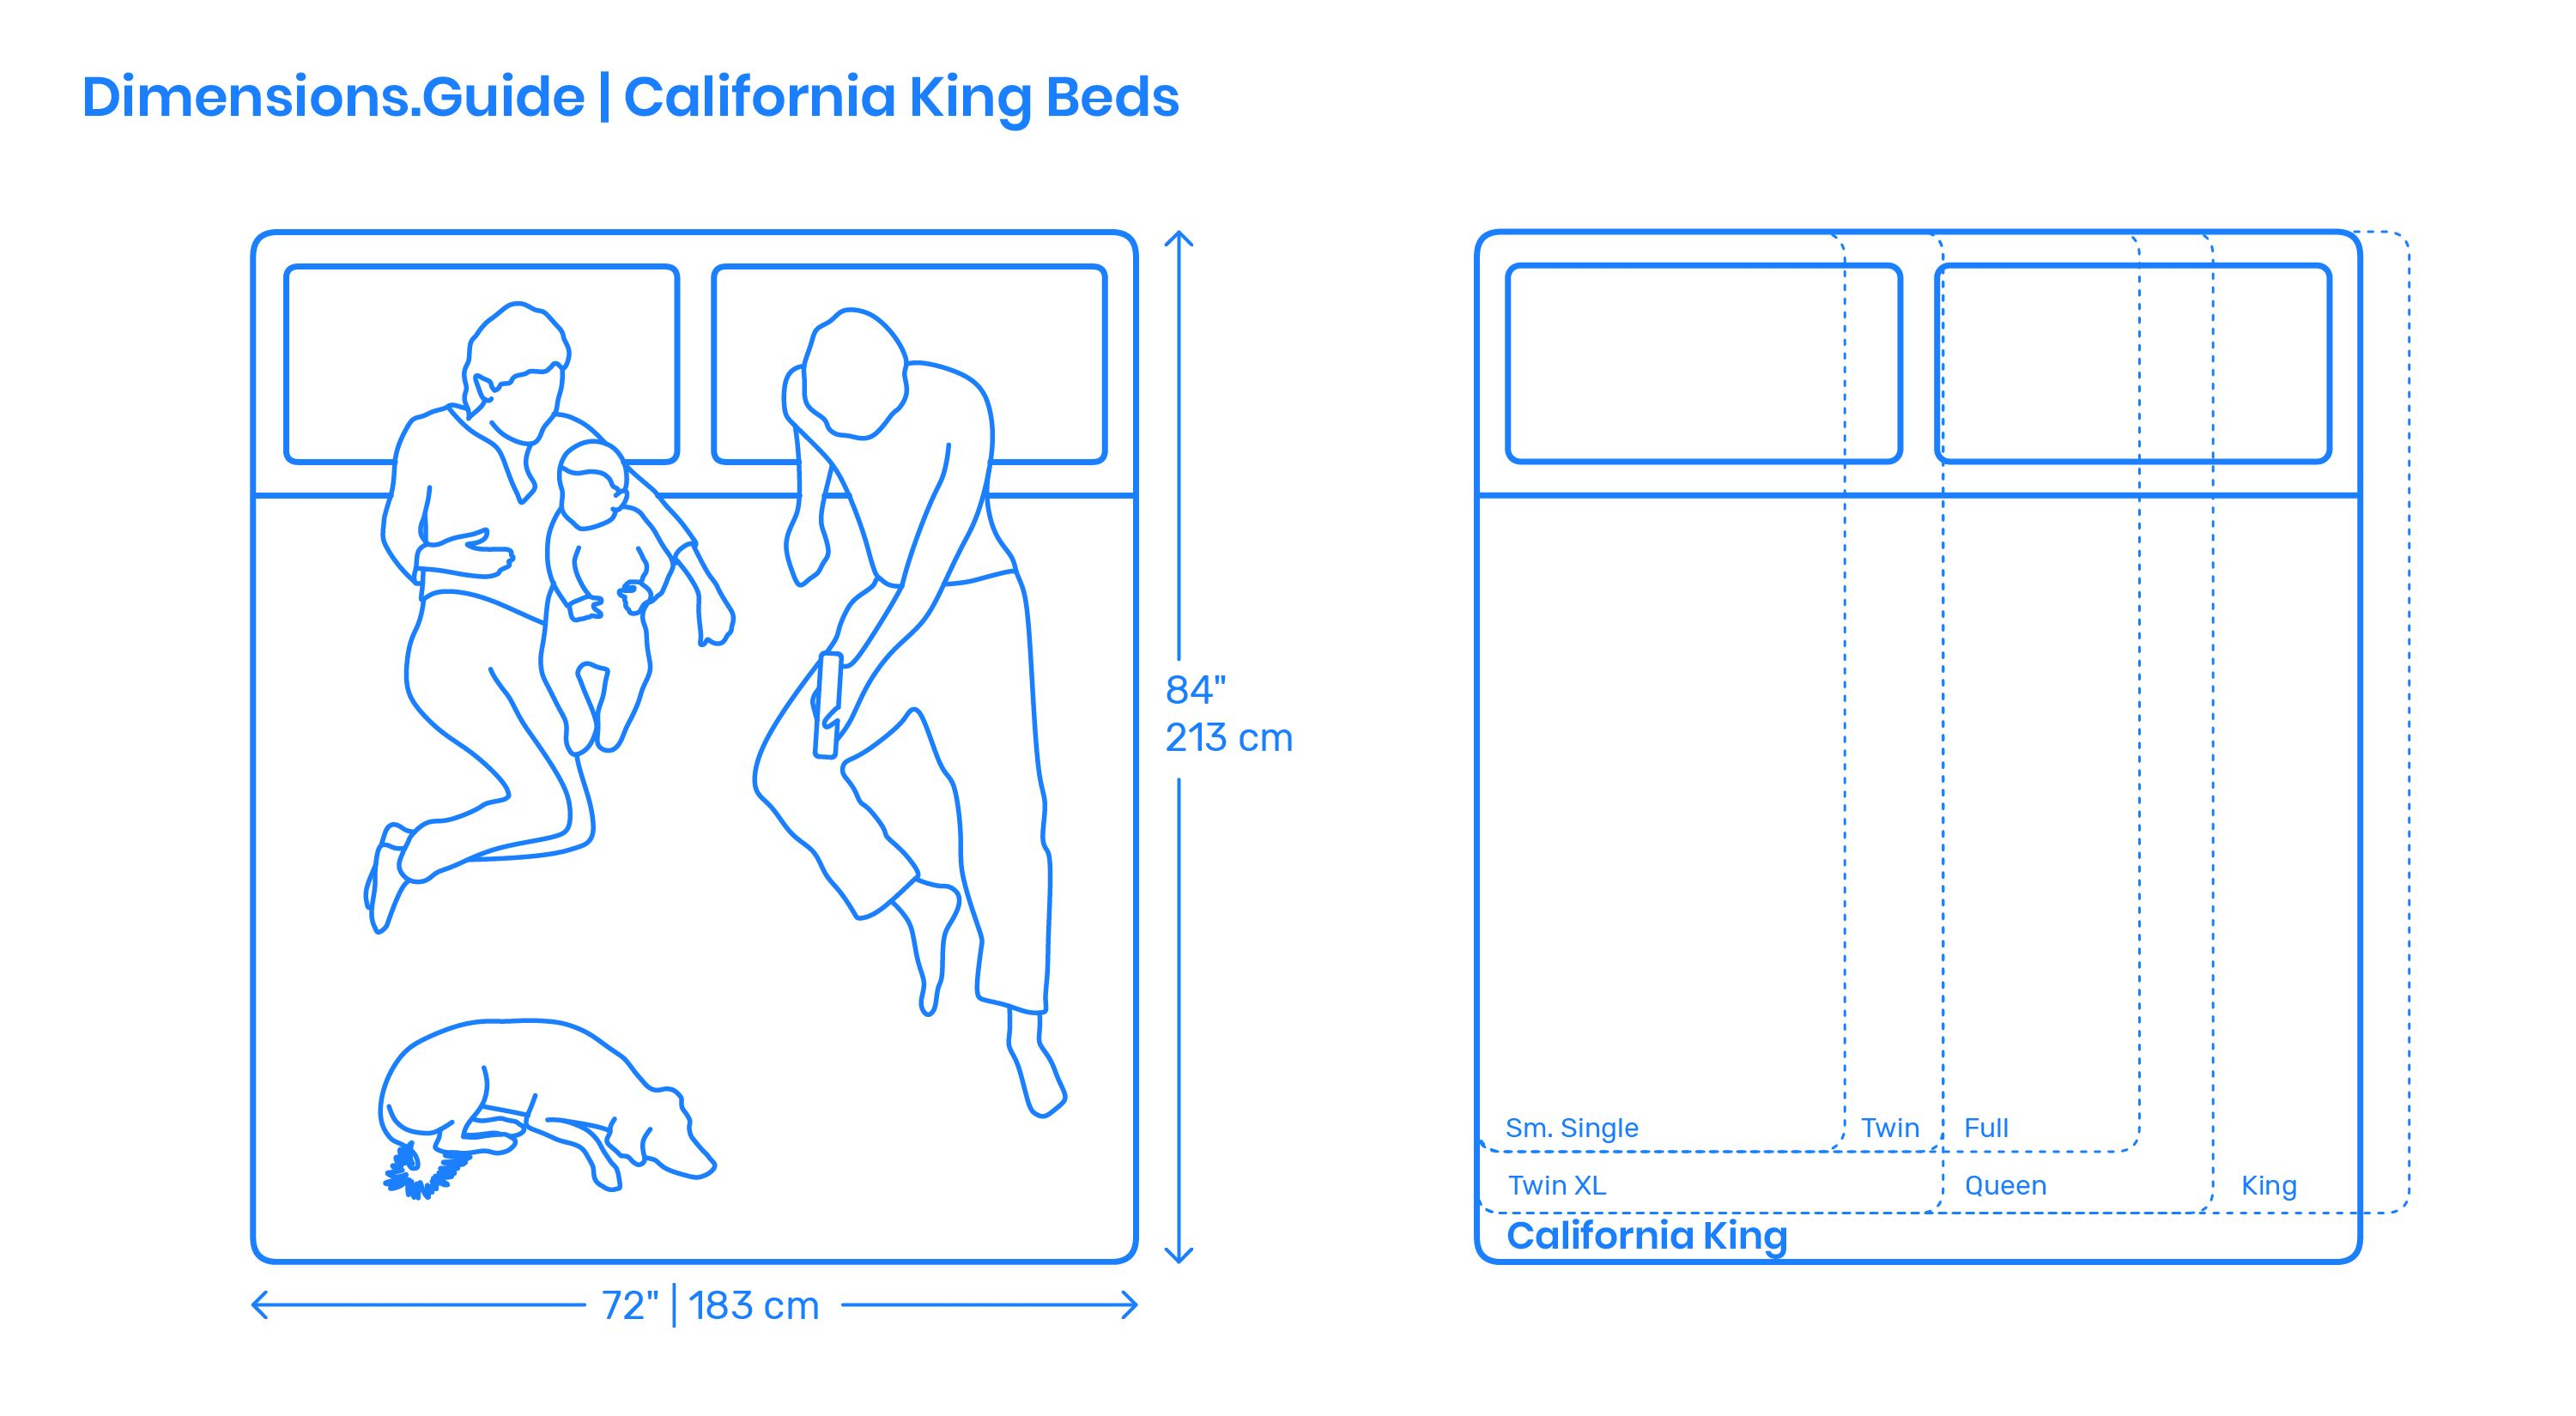 California King Beds Are Variations Of King Beds Designed For